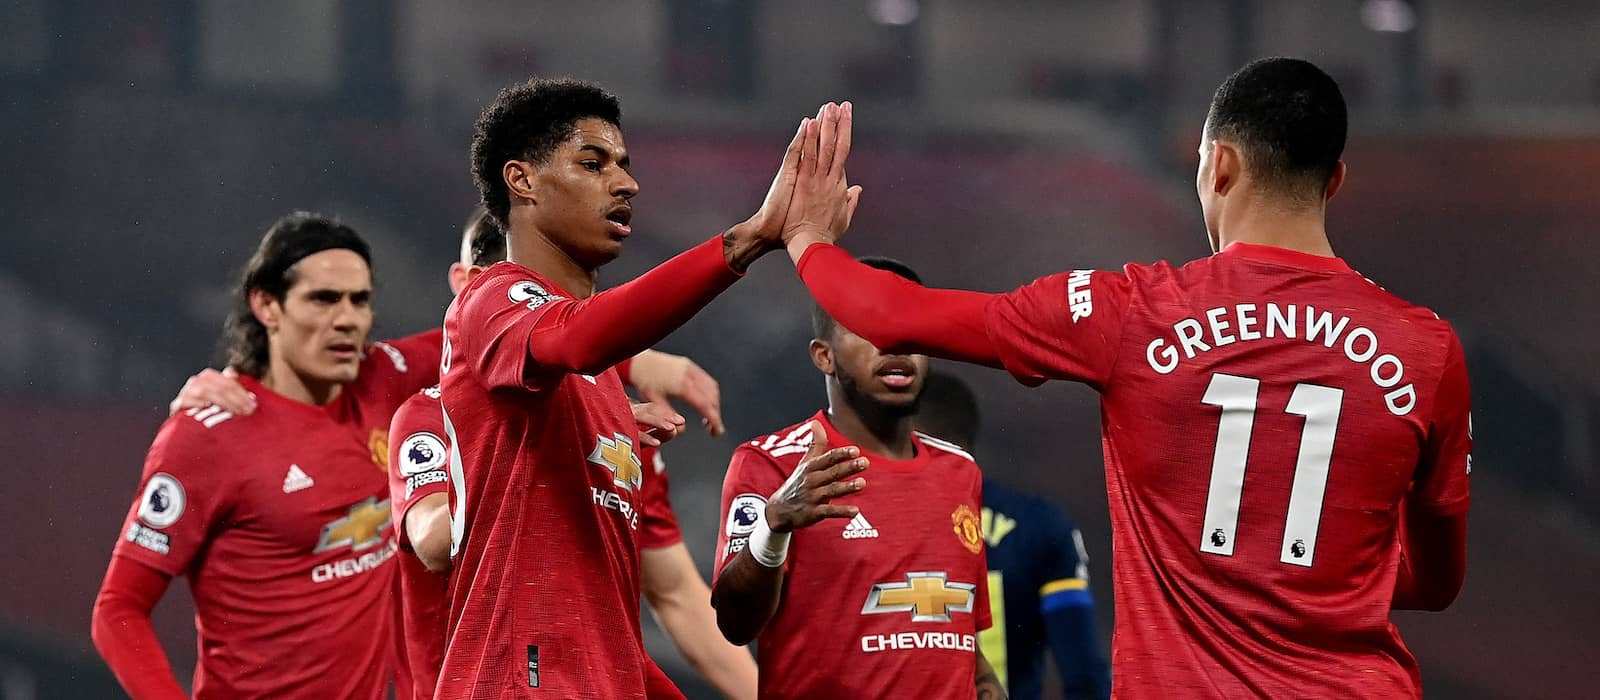 Is Ole Gunnar Solskjaer's assessment of Man United's forwards fair?